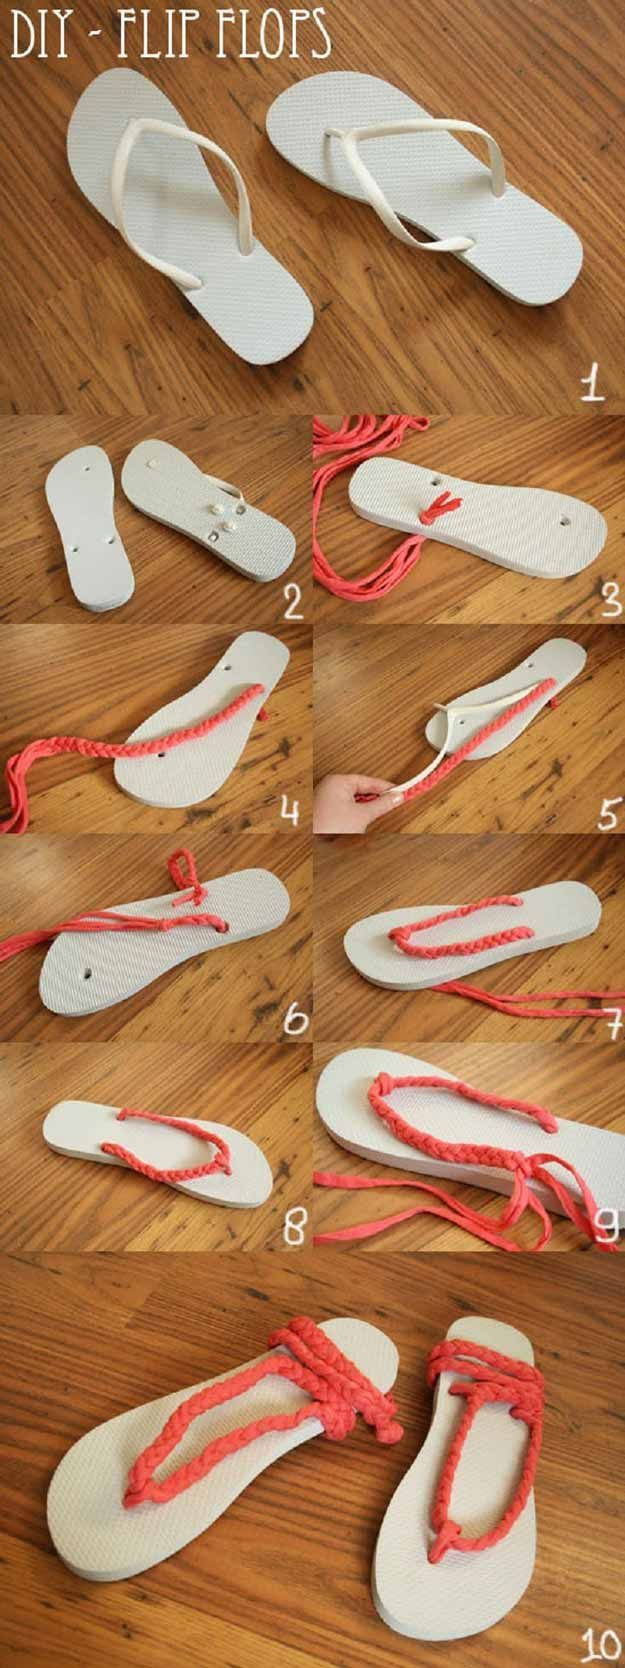 Cool and Easy Craft Project Ideas for Teen Girls   DIY Flip Flops by DIY Ready at http://diyready.com/27-cool-diy-projects-for-teen-girls/